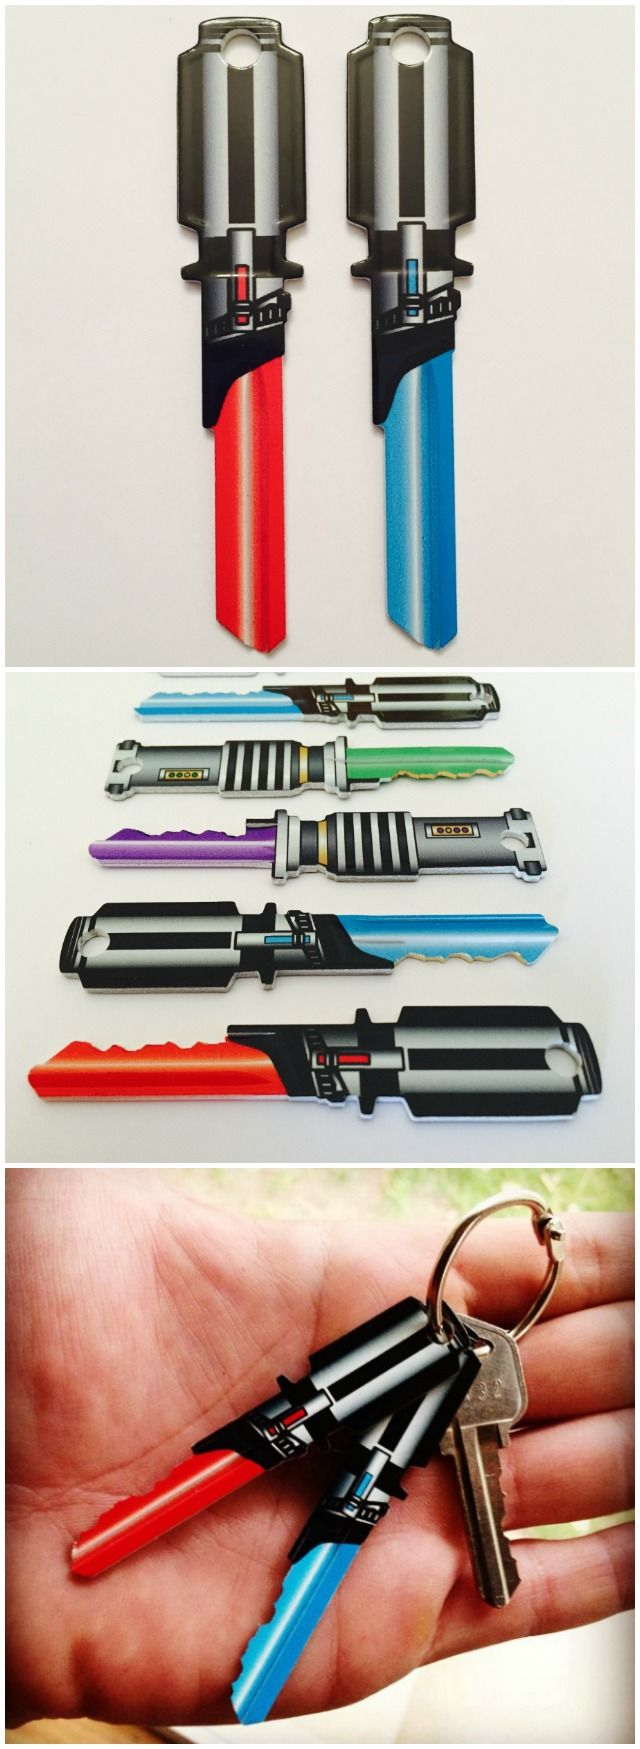 Blank keys shaped like Lightsabers. I want!!!